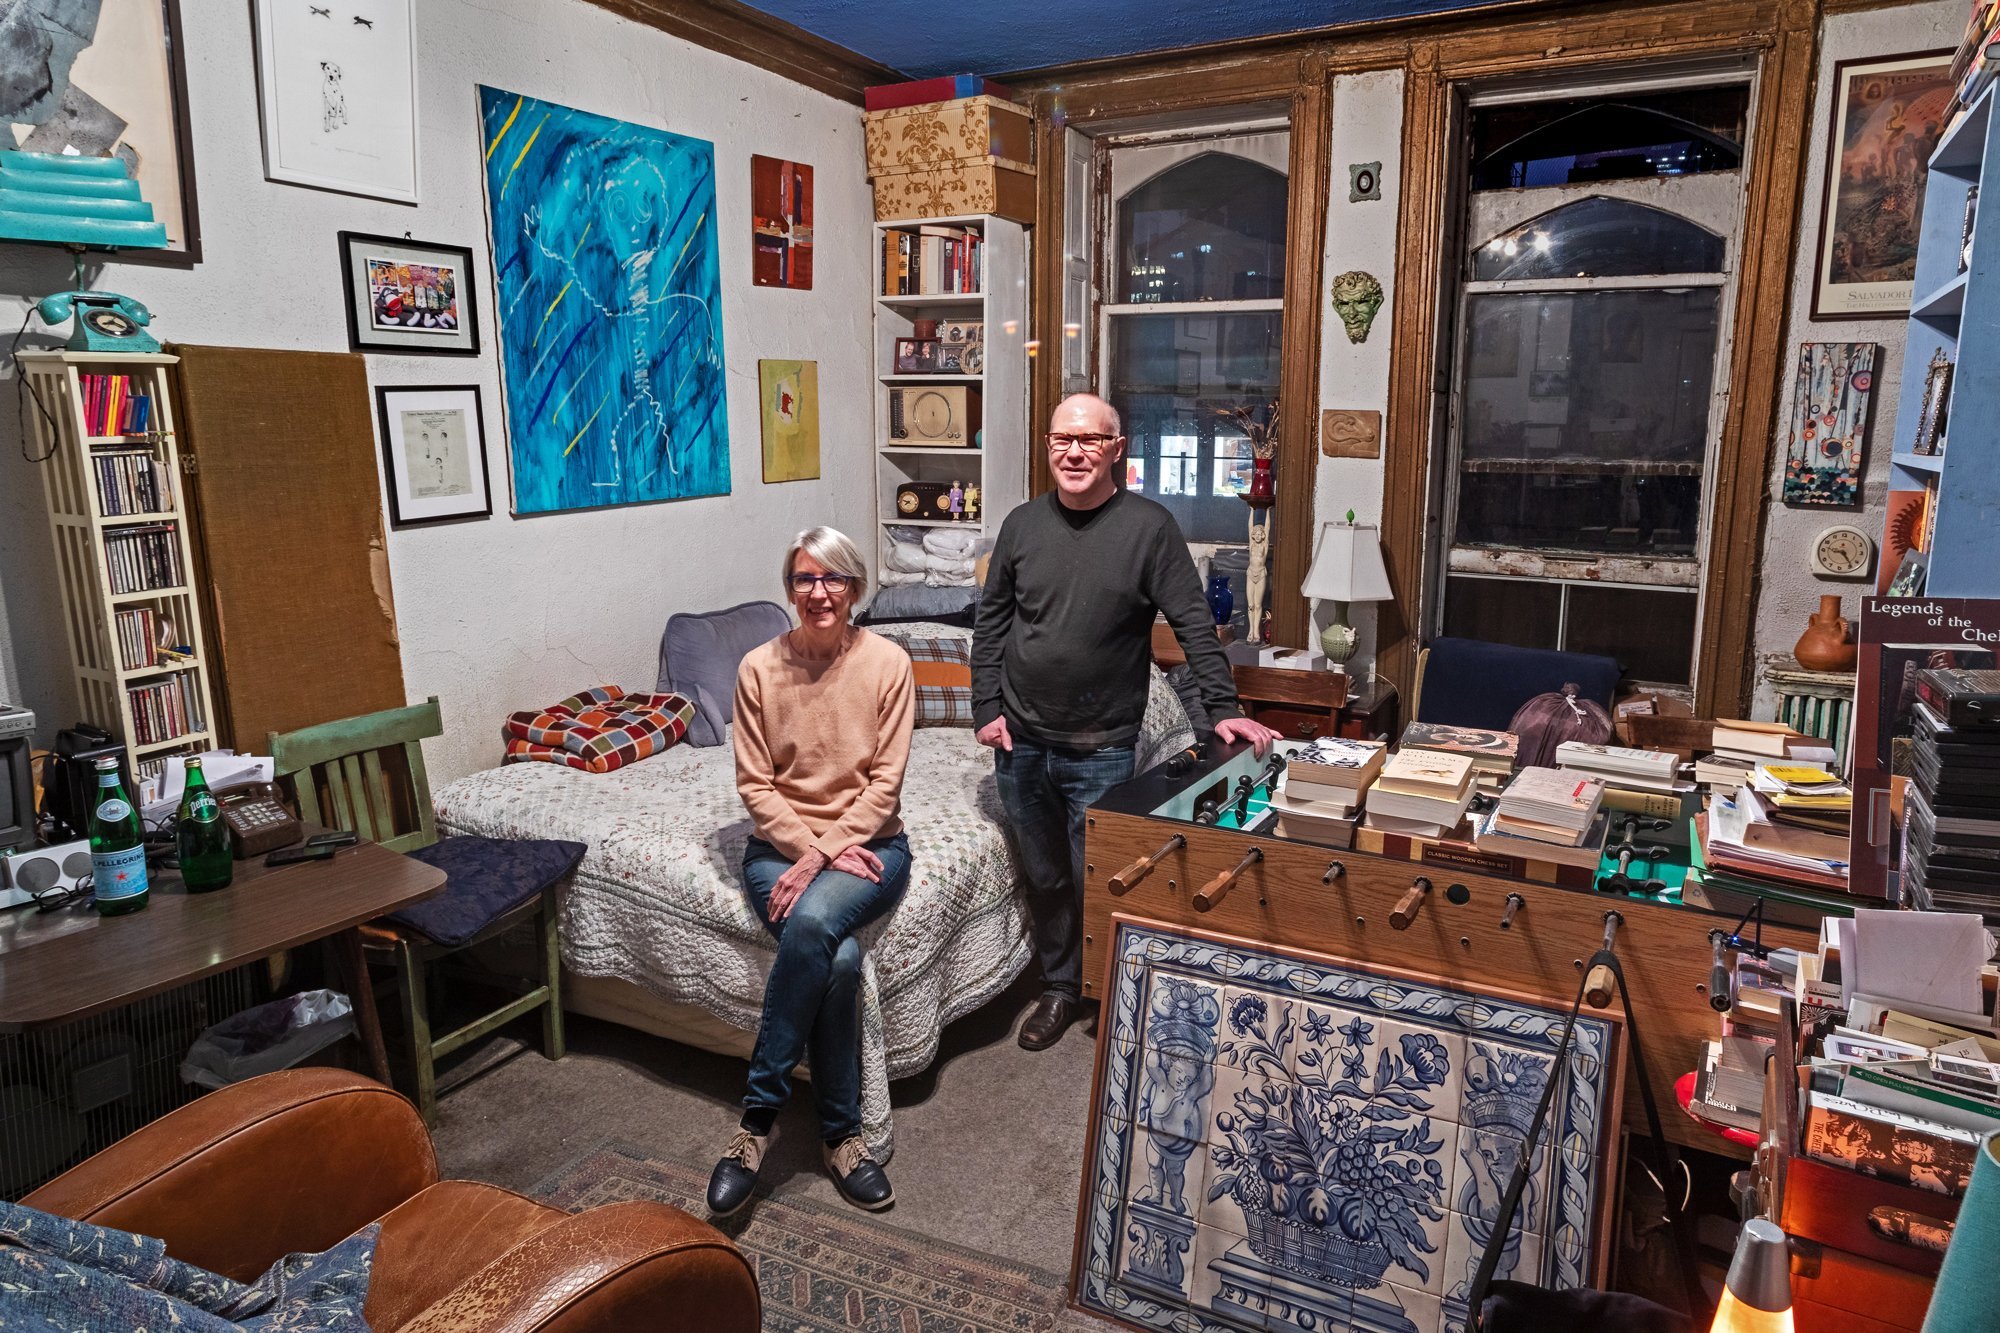 Our 220sqft This Couple Has Made It Work For 24 Years In A Chelsea Hotel Sro 6sqft,United Airlines Checked Baggage Fees For International Flights